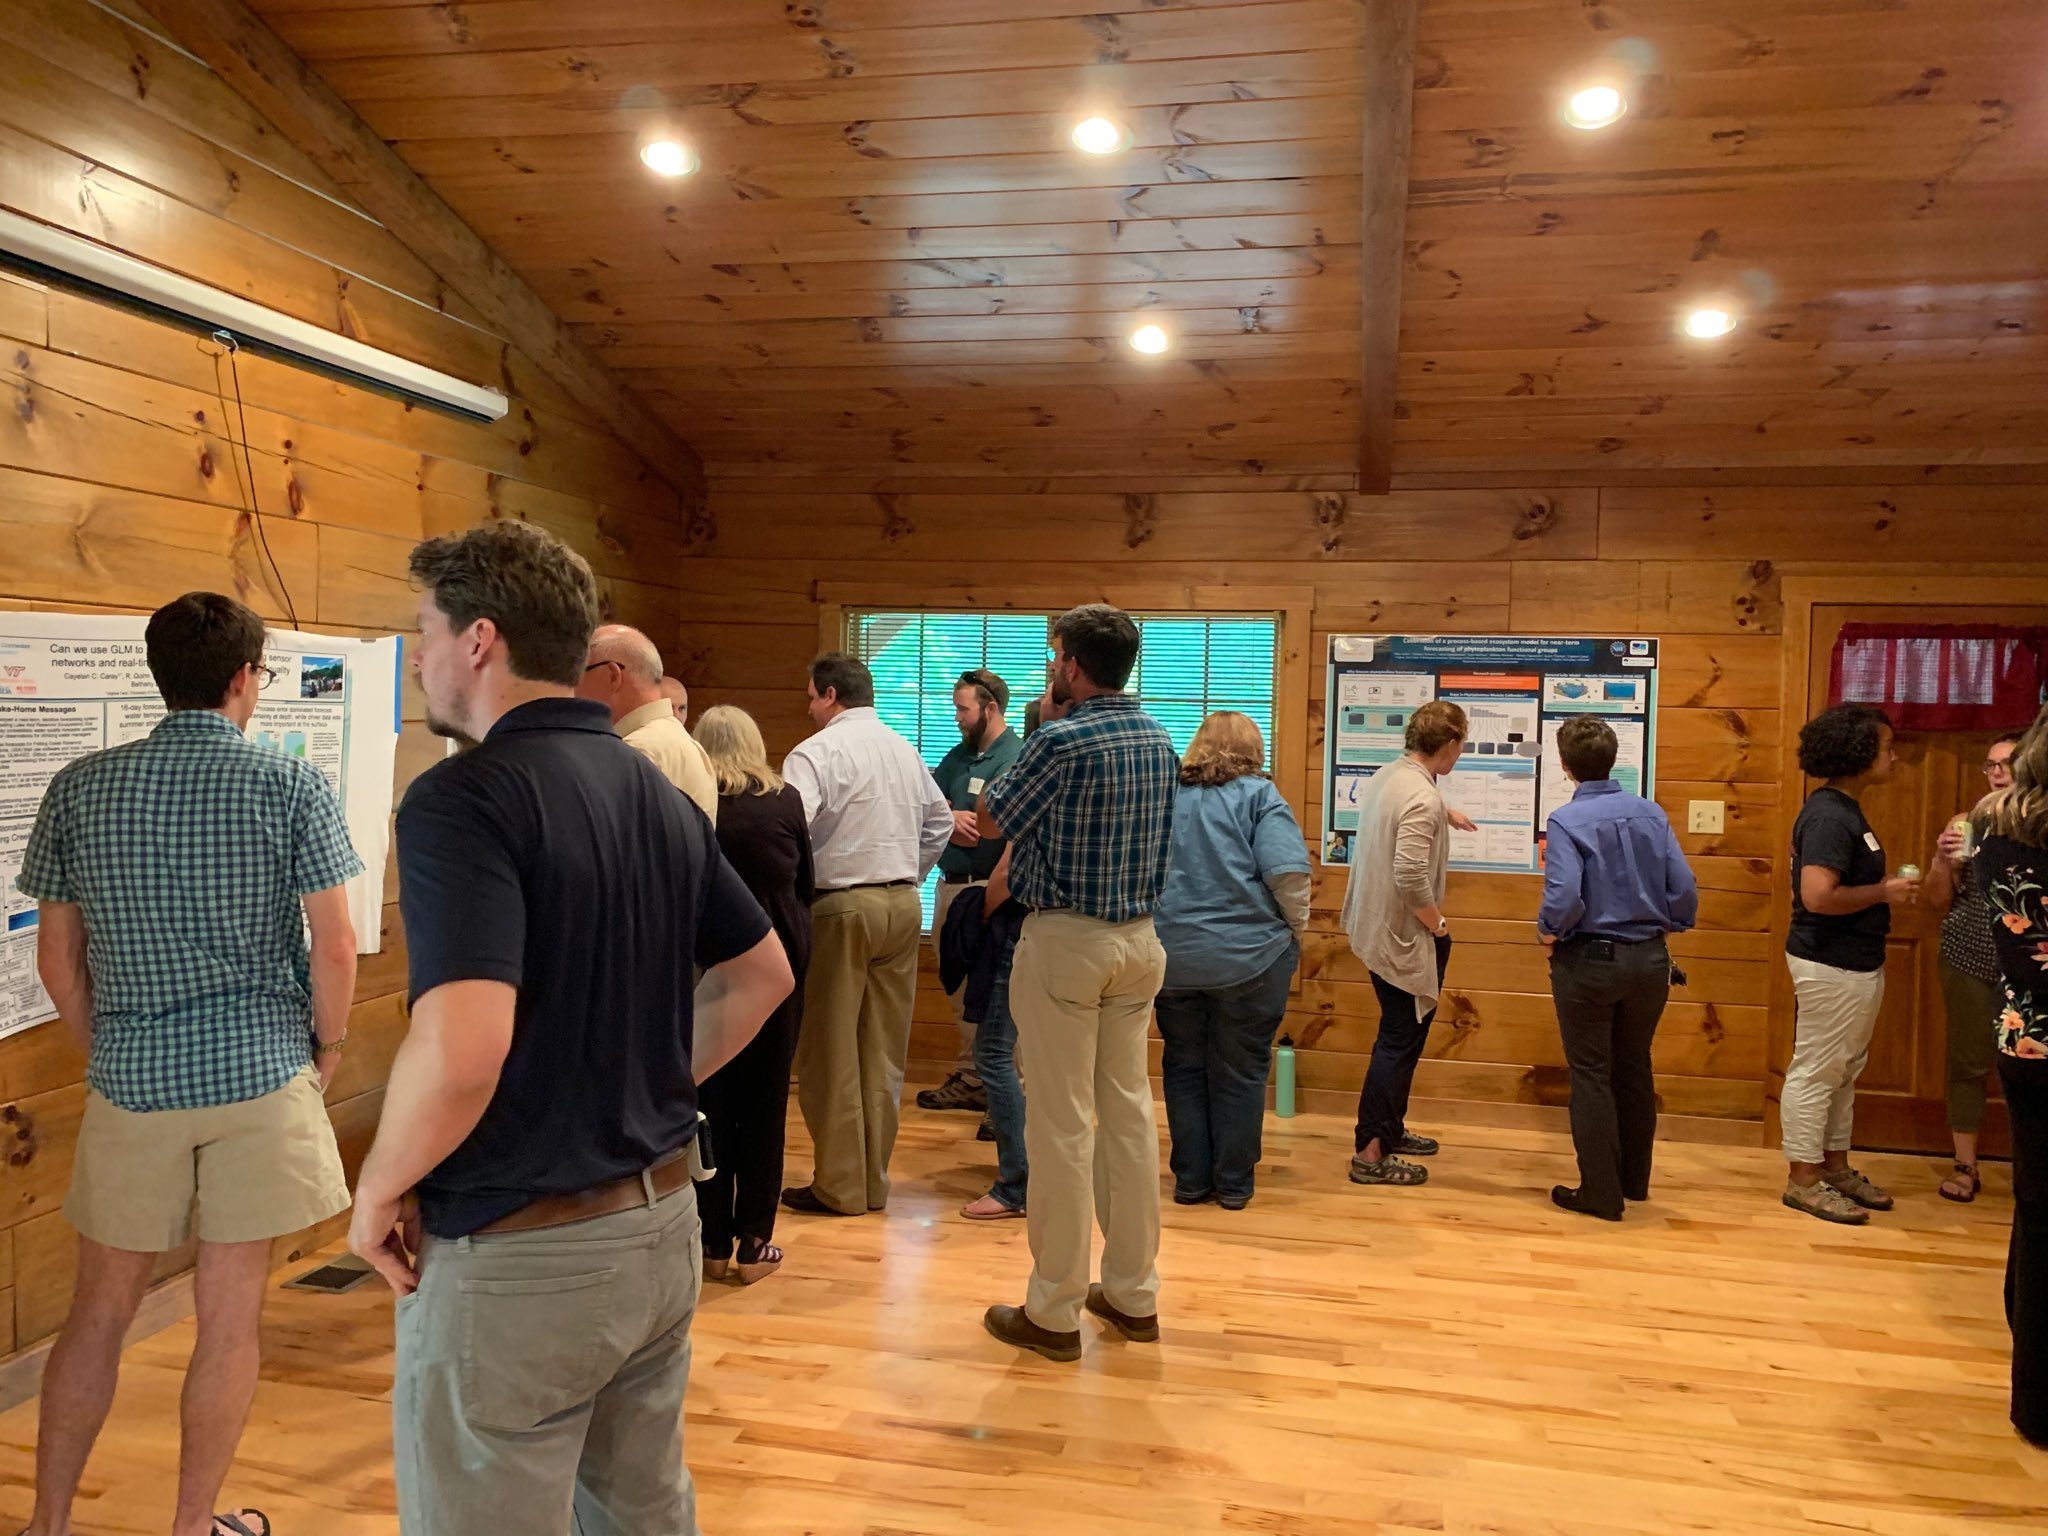 Great way to cap off day 2 of the SmartReservoir.org workshop: poster session w our water utility manager partners! ⁦@NSF_CISE⁩ ⁦@City_of_Roanoke⁩ ⁦@VT_Science⁩